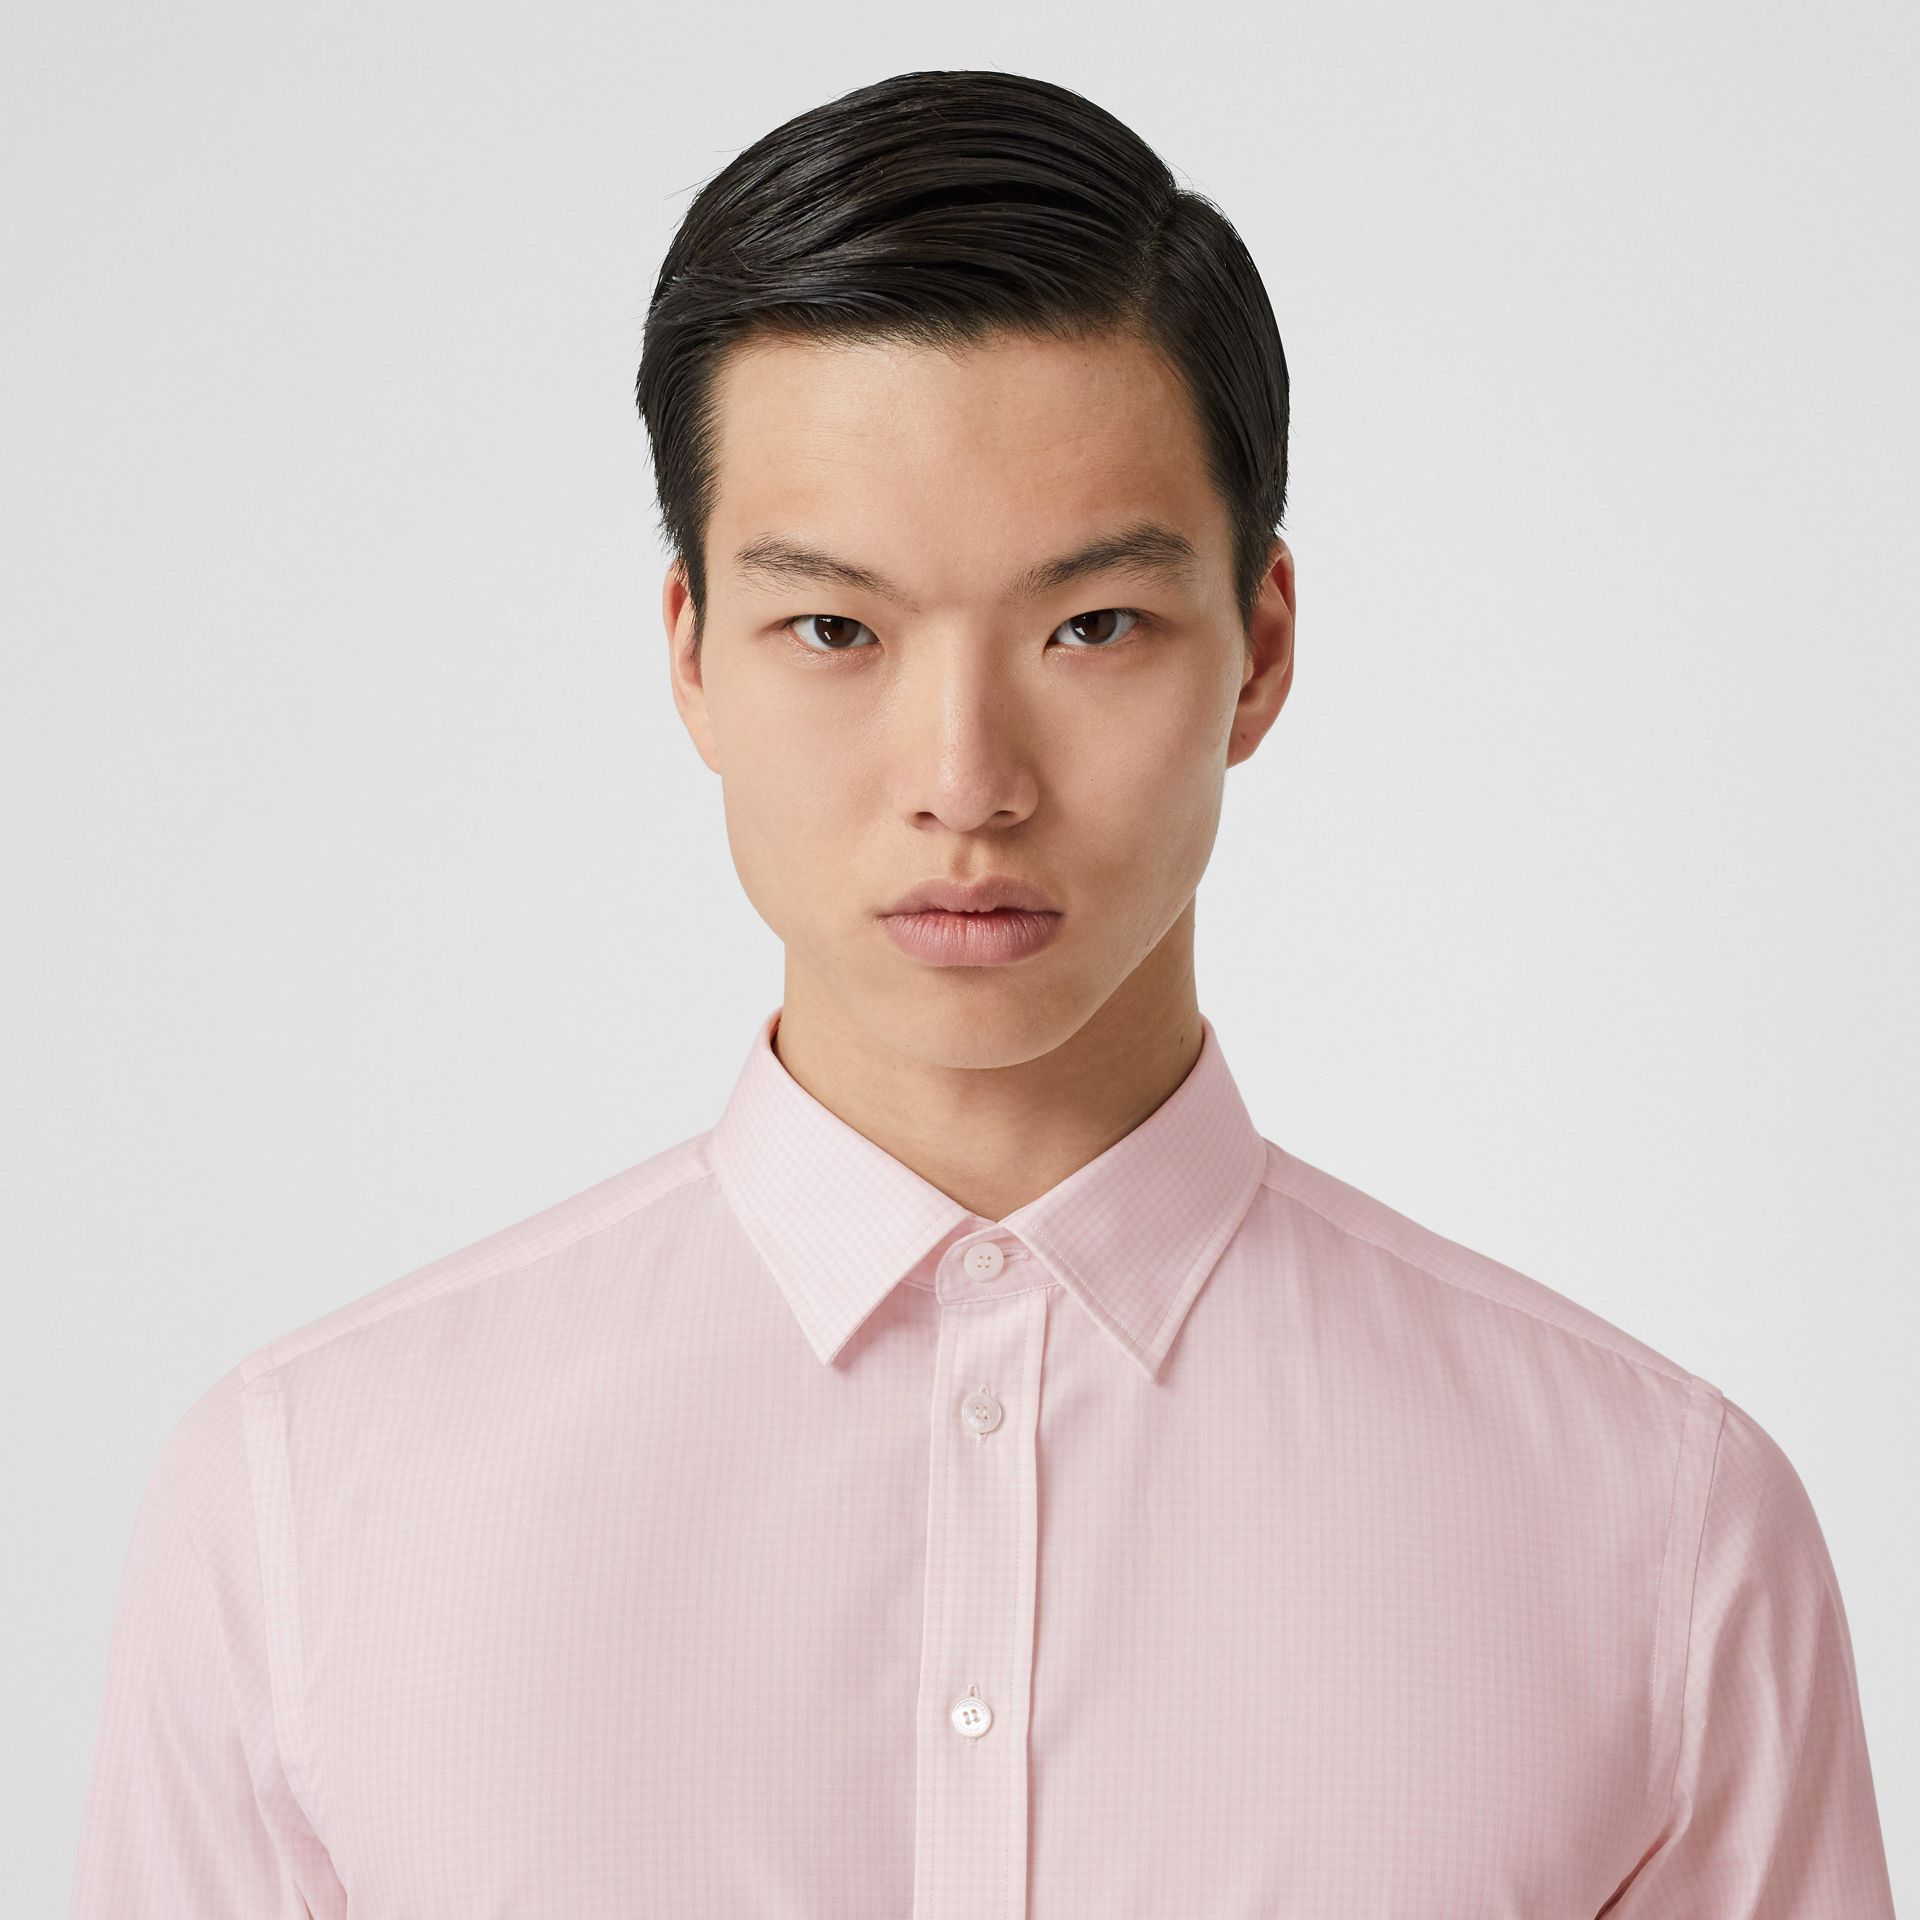 Slim Fit Micro Check Cotton Poplin Shirt in Alabaster Pink - Men | Burberry Australia - gallery image 1